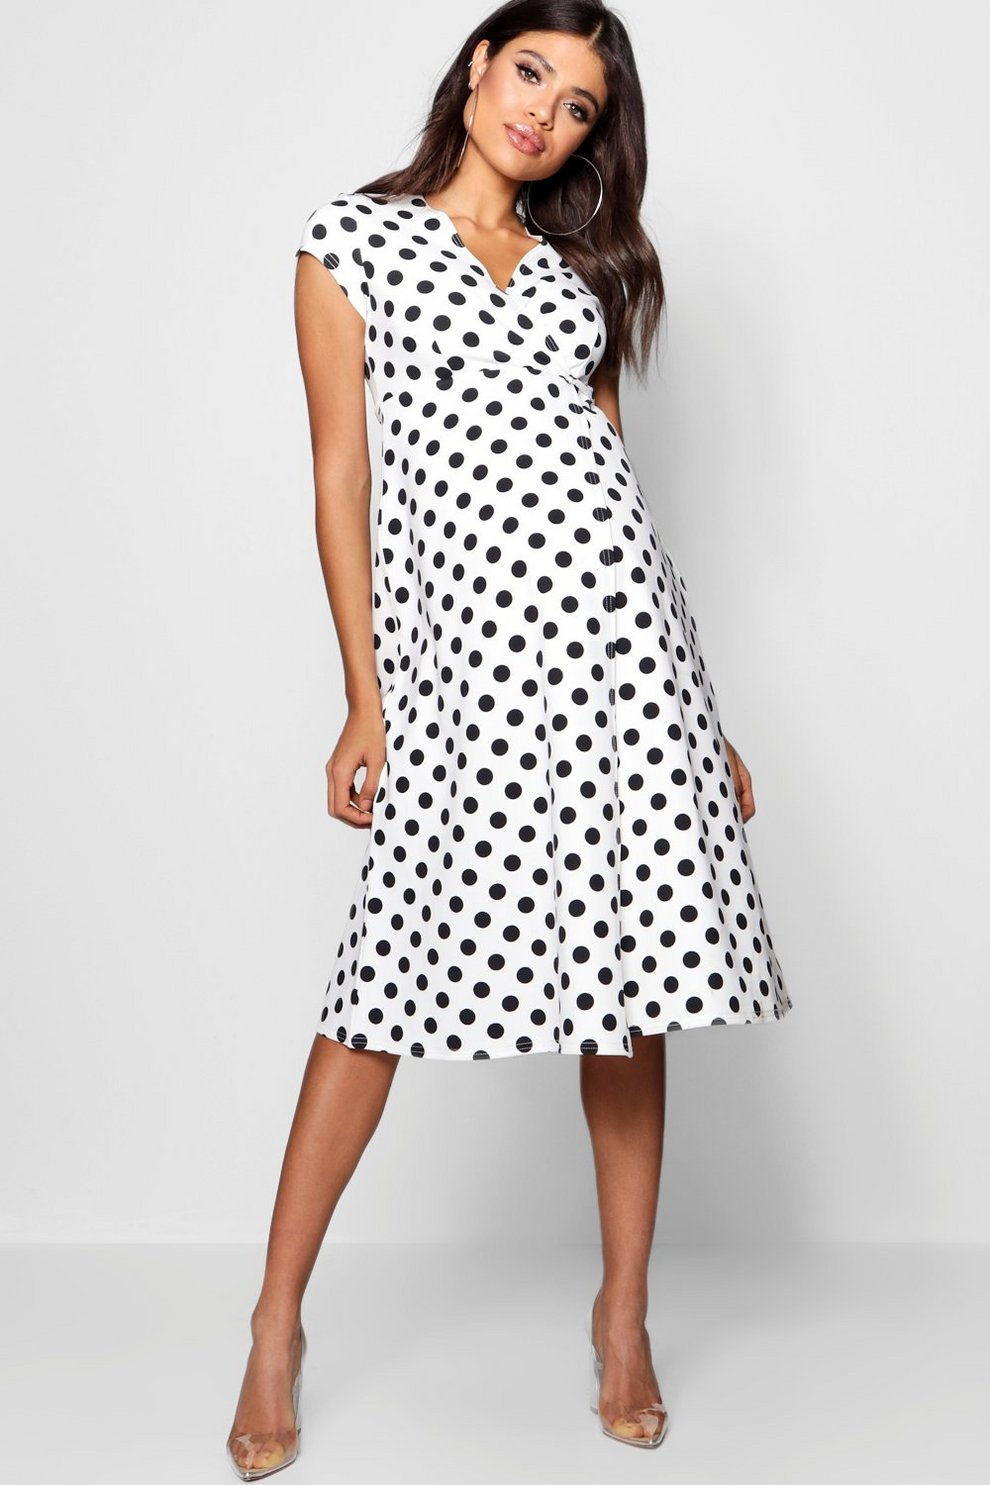 36e5b18ab711 Maternity Polka Dot Wrap Dress | Boohoo